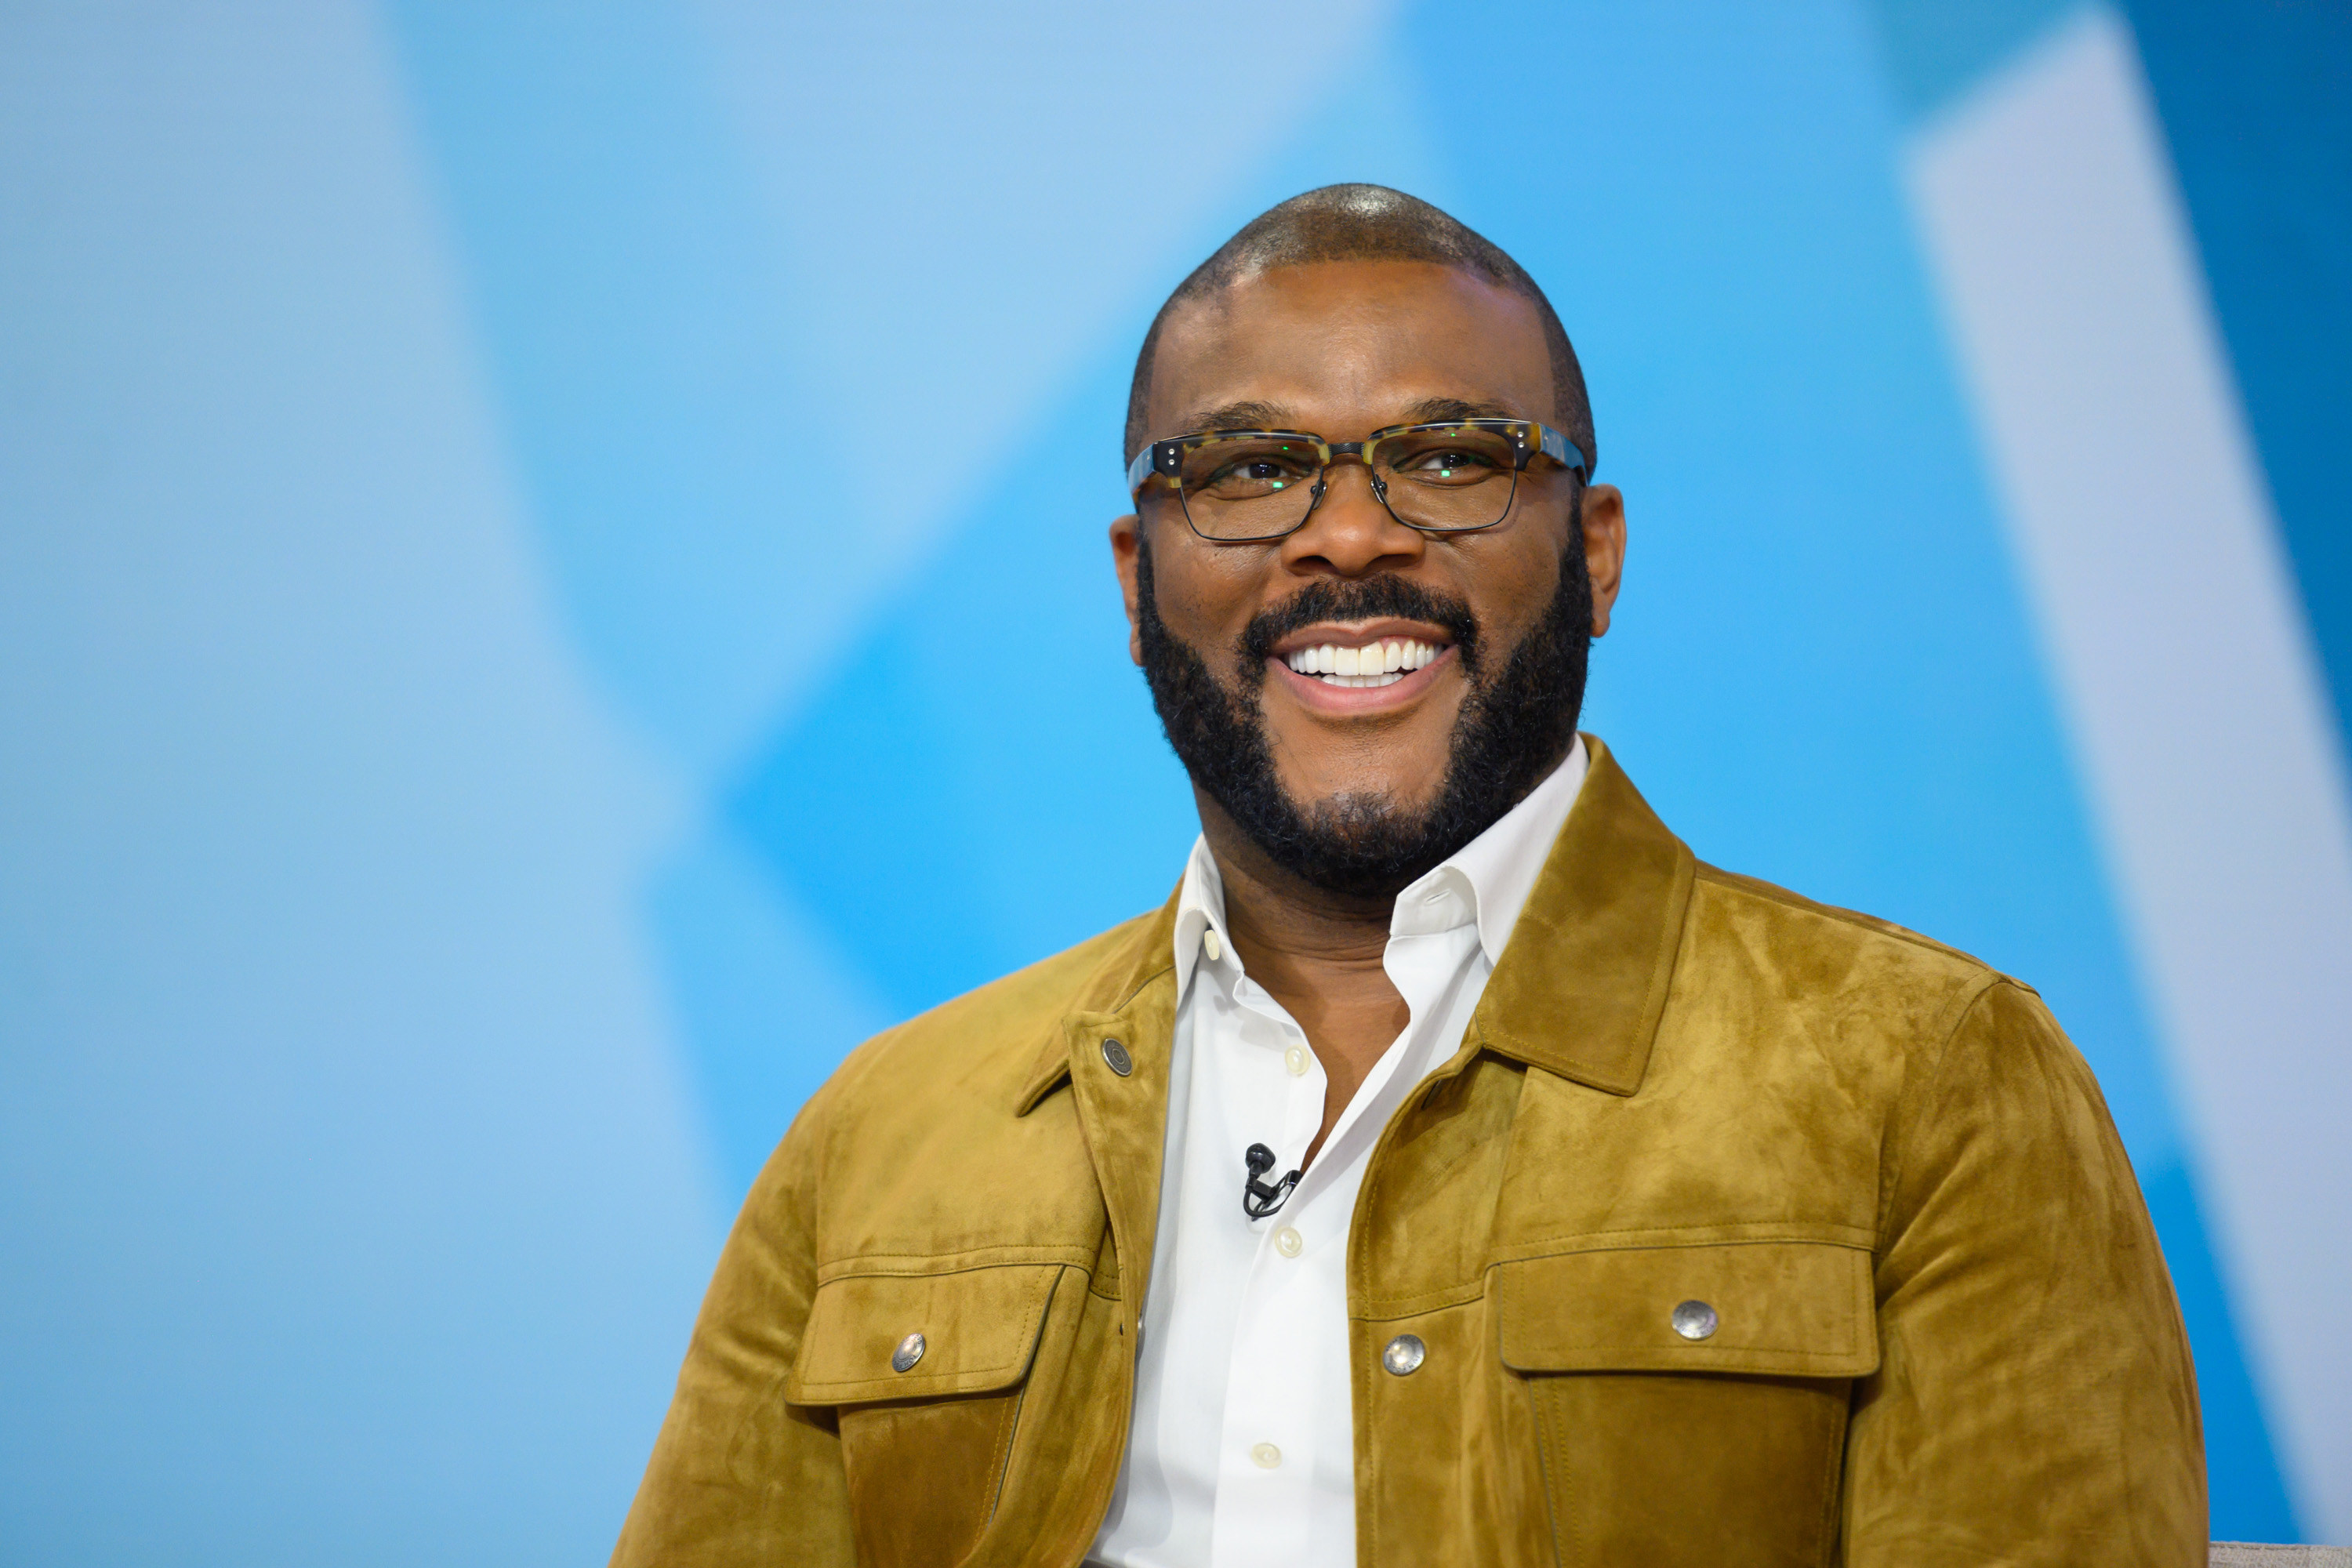 Tyler Perry, wearing a jacket and dress shirt, during his appearance on the TODAY show